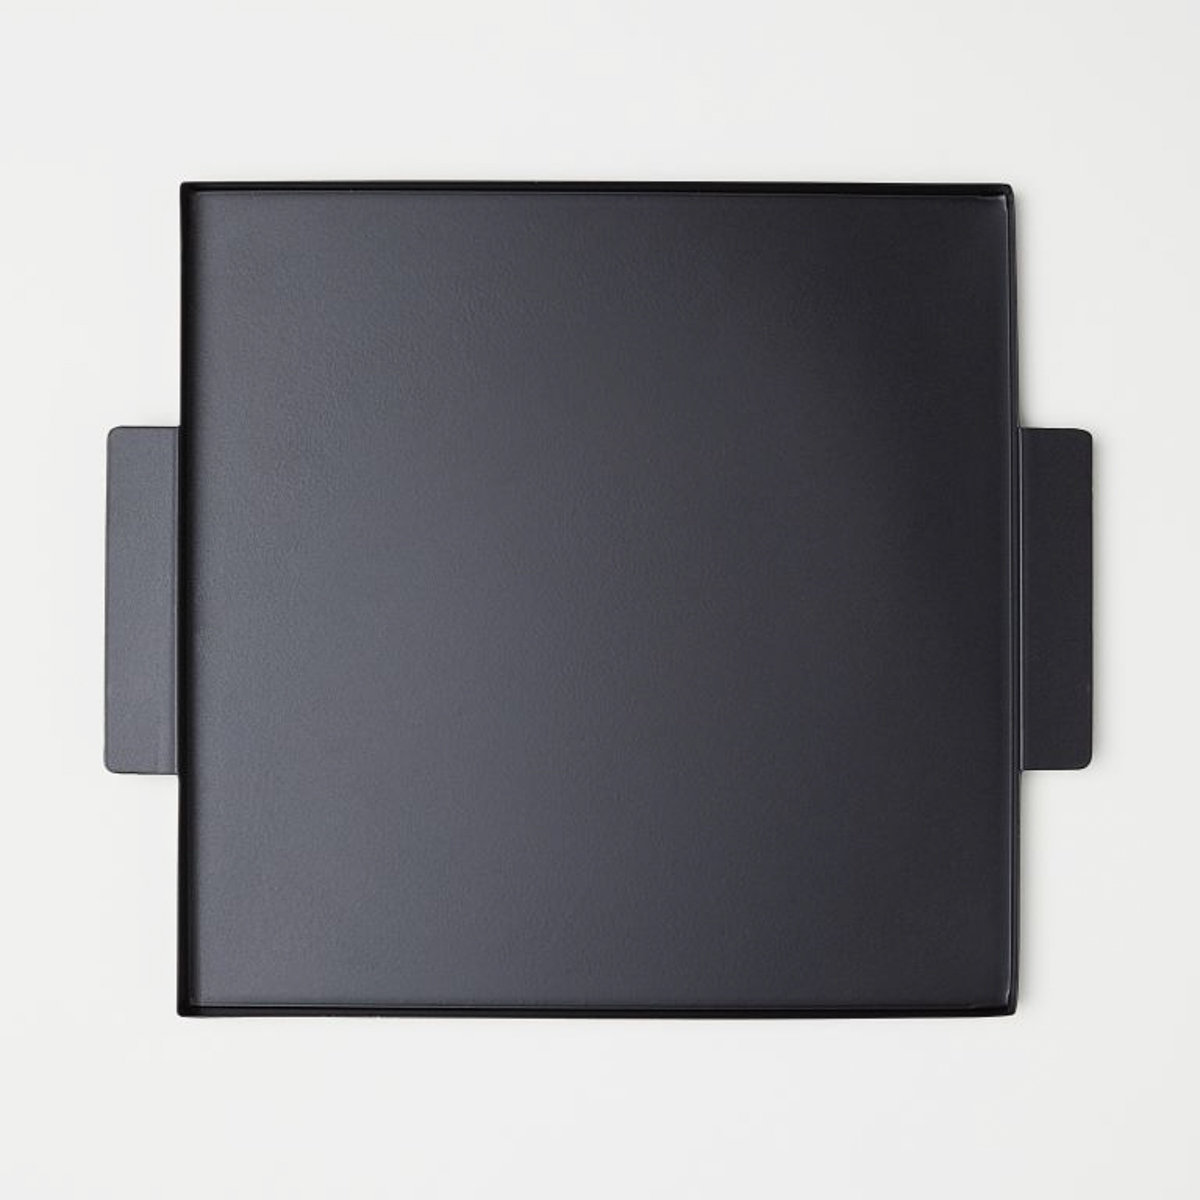 hm-black-metal-tray-storage-lifestyle-man-for-himself